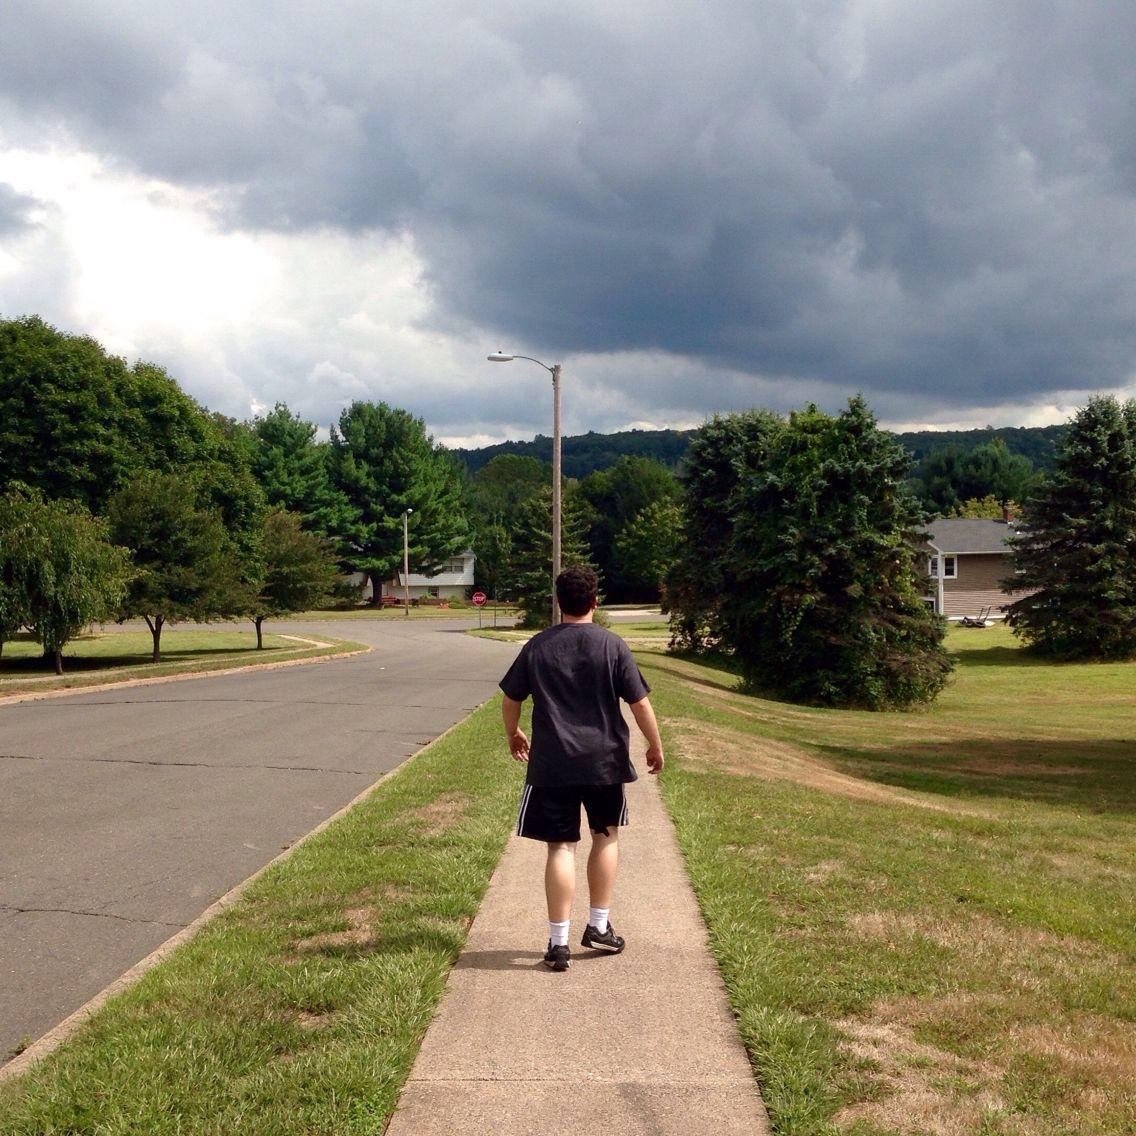 Even though we were in the blazing sun - he couldn't get past those dark clouds - we didn't get very far....  I walked 1.5 @CharityMiles for @MichaelJFoxOrg. Thx2 @Humana for sponsoring me!